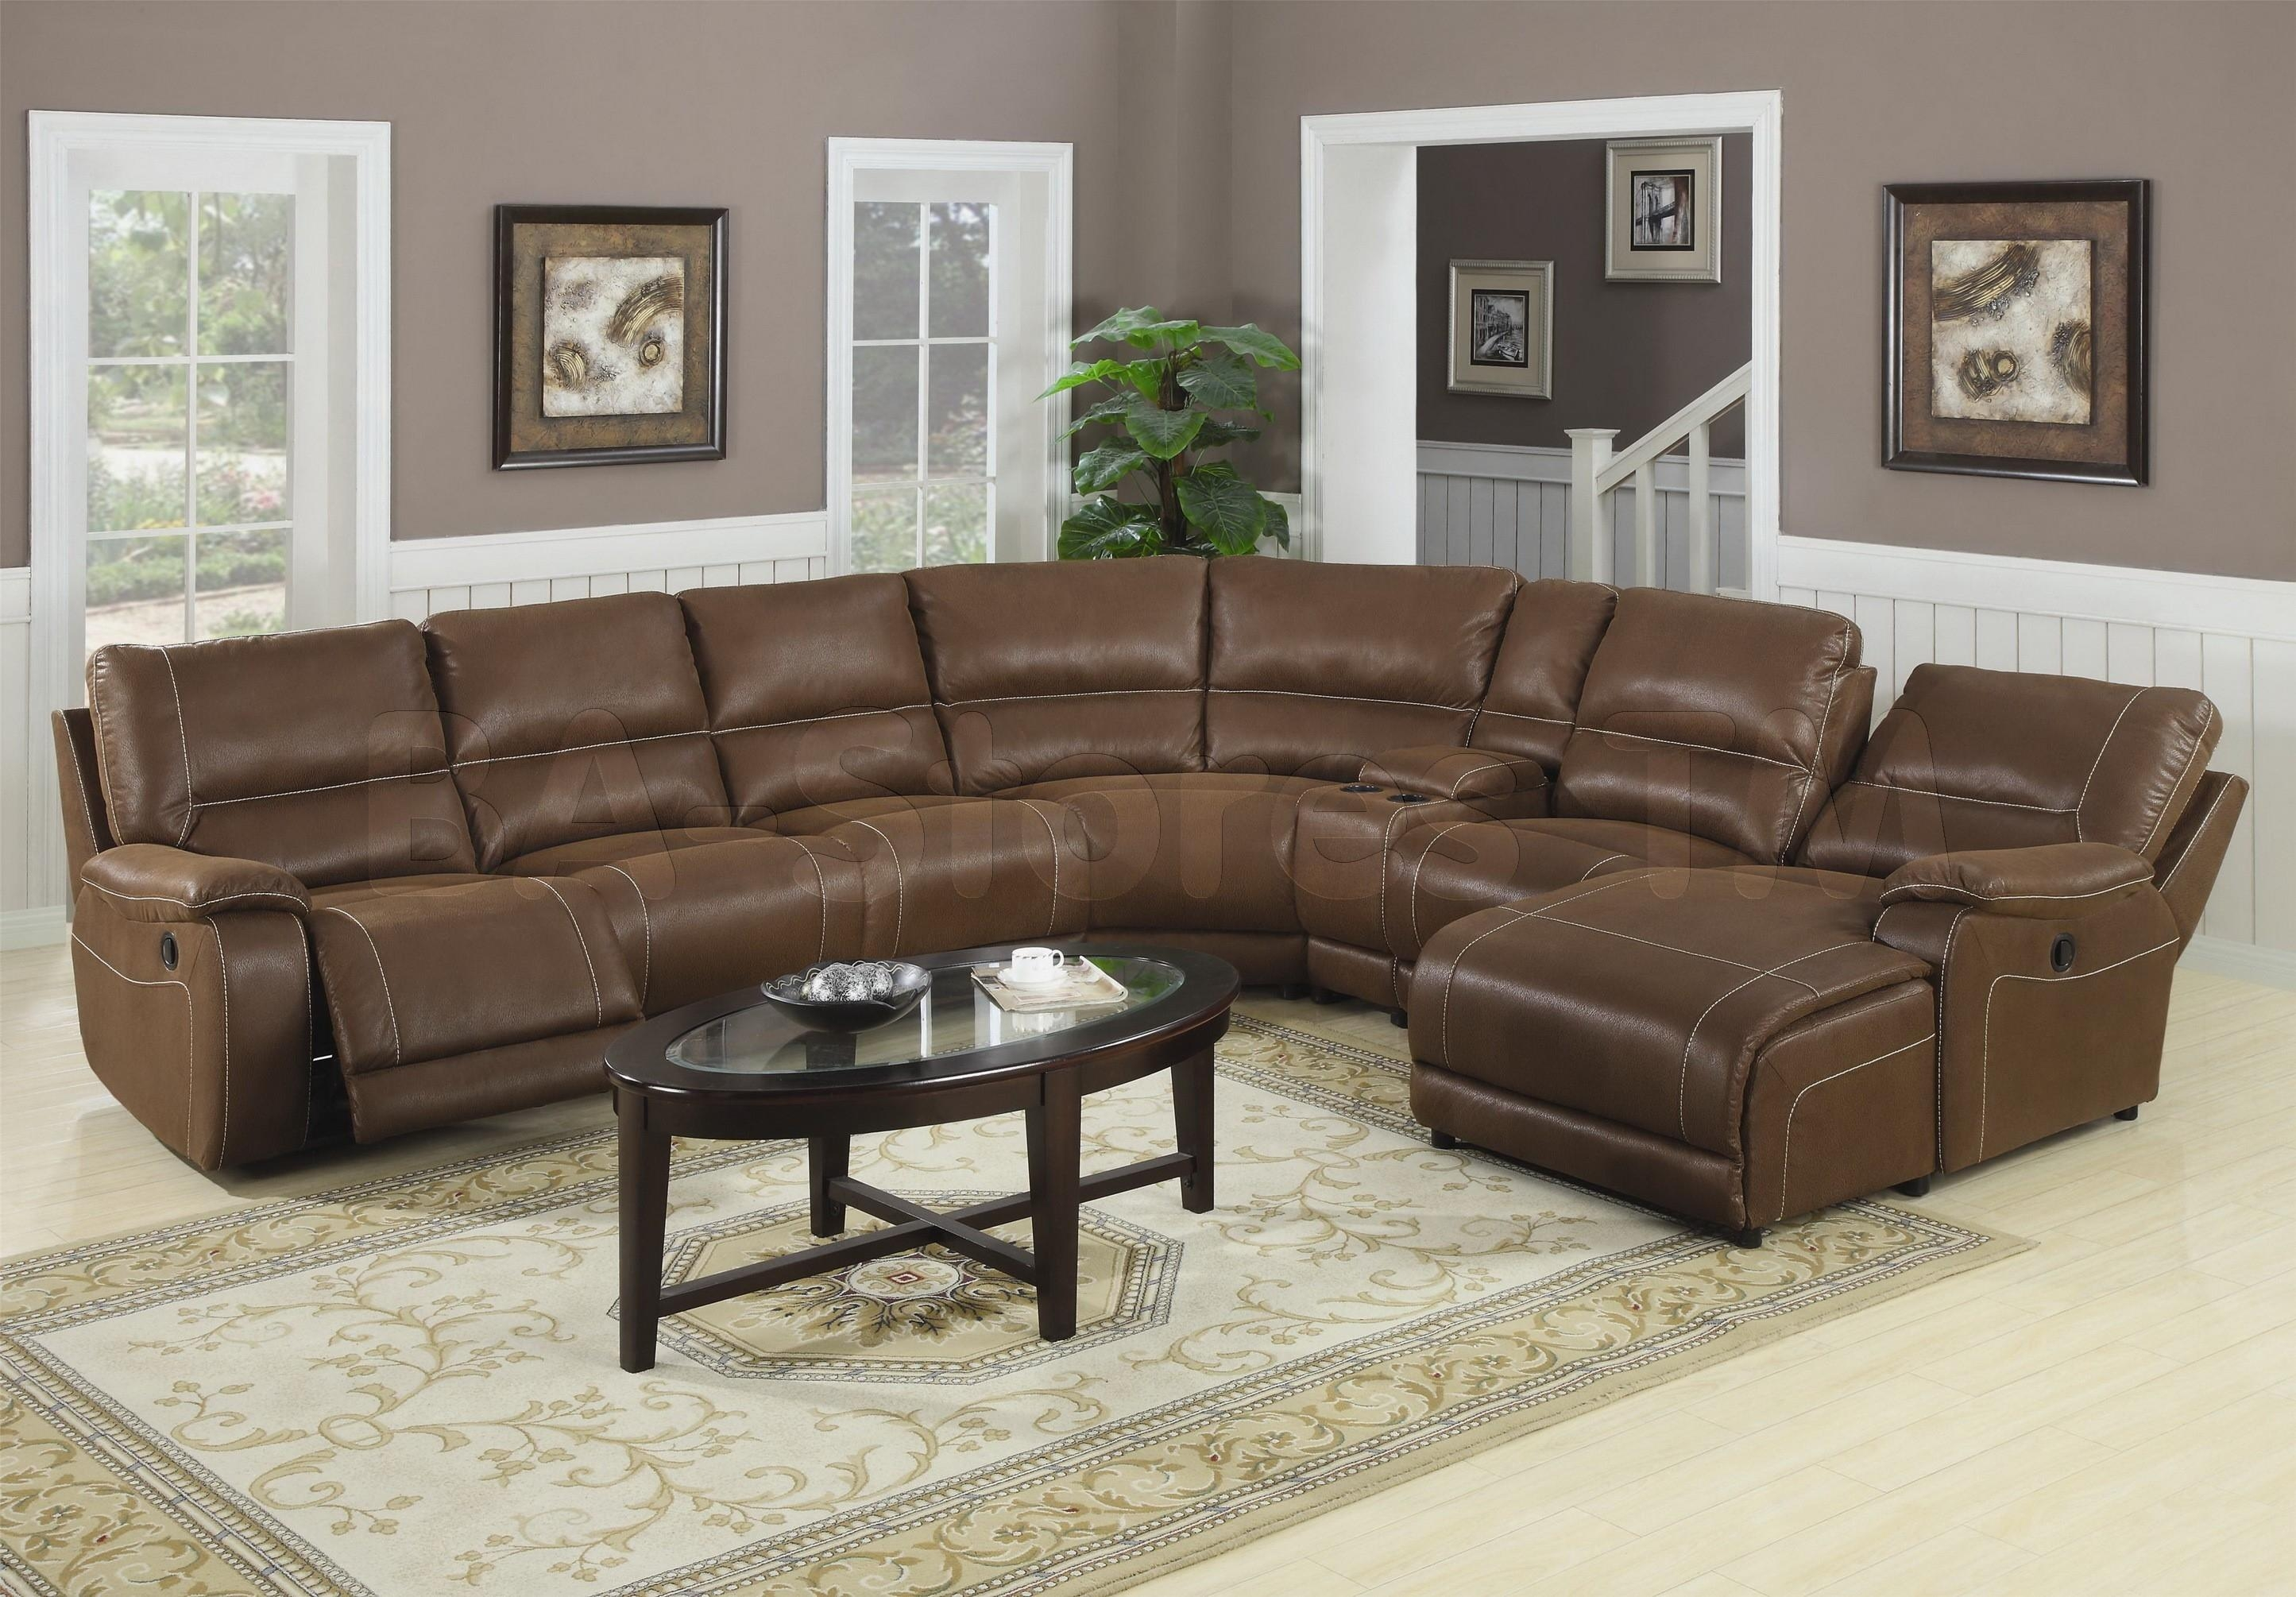 Furniture: Interesting Living Room Interior Using Large Sectional Intended For Huge Leather Sectional (Image 5 of 20)